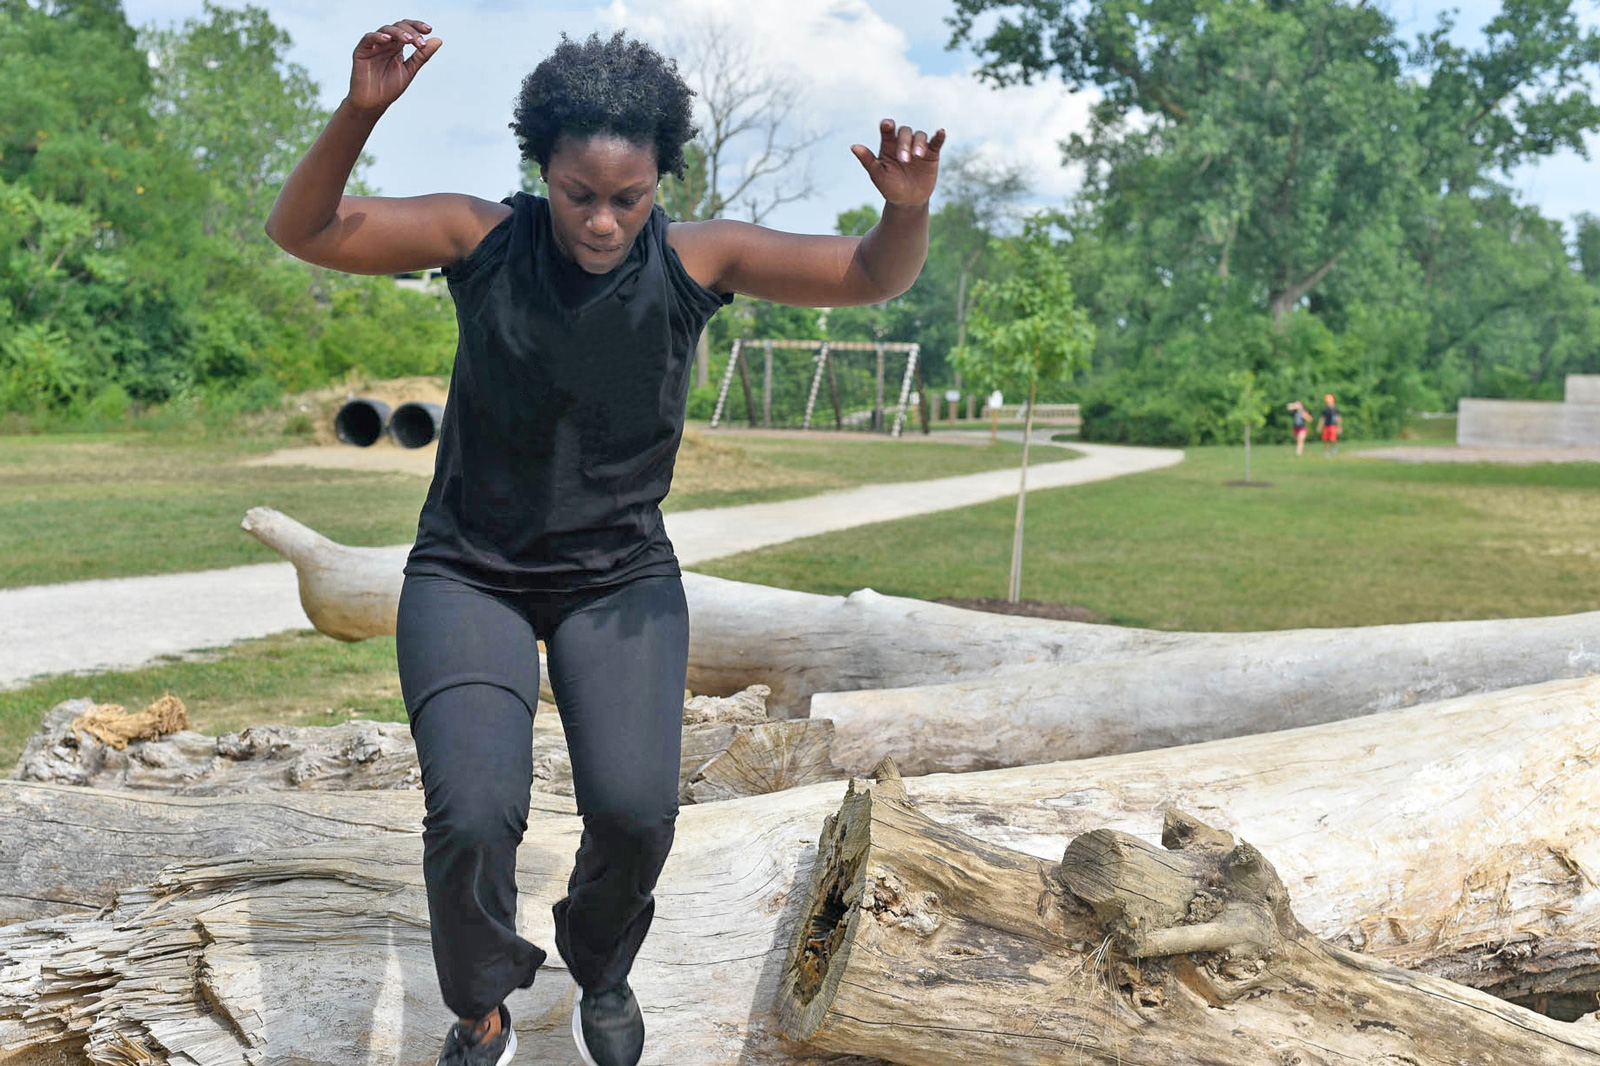 Woman on the log run on the obstacle course at Scioto Audubon Metro Park.